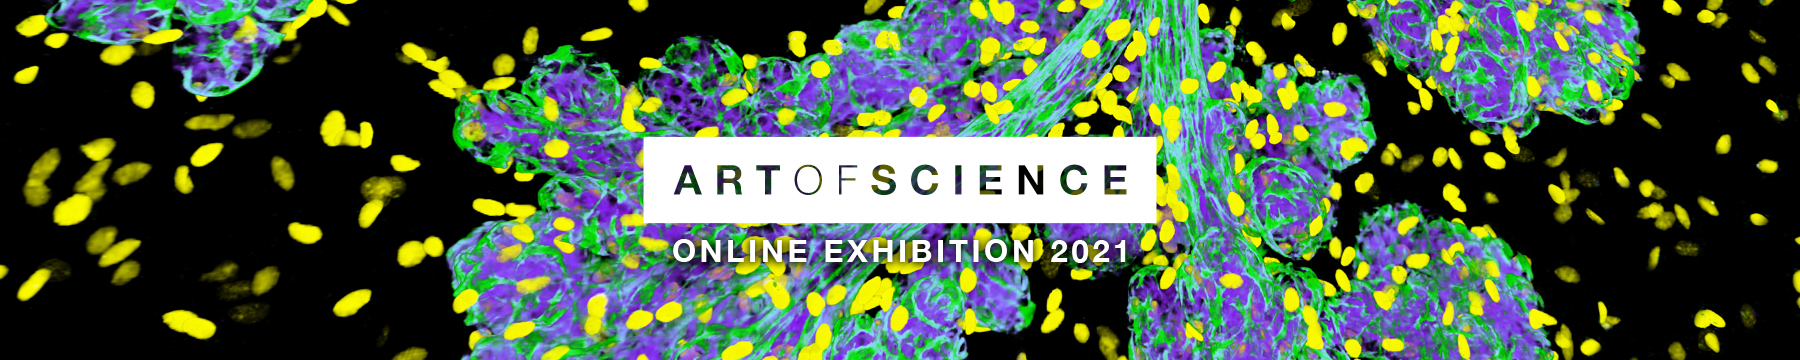 Art of Science 2021 promotion